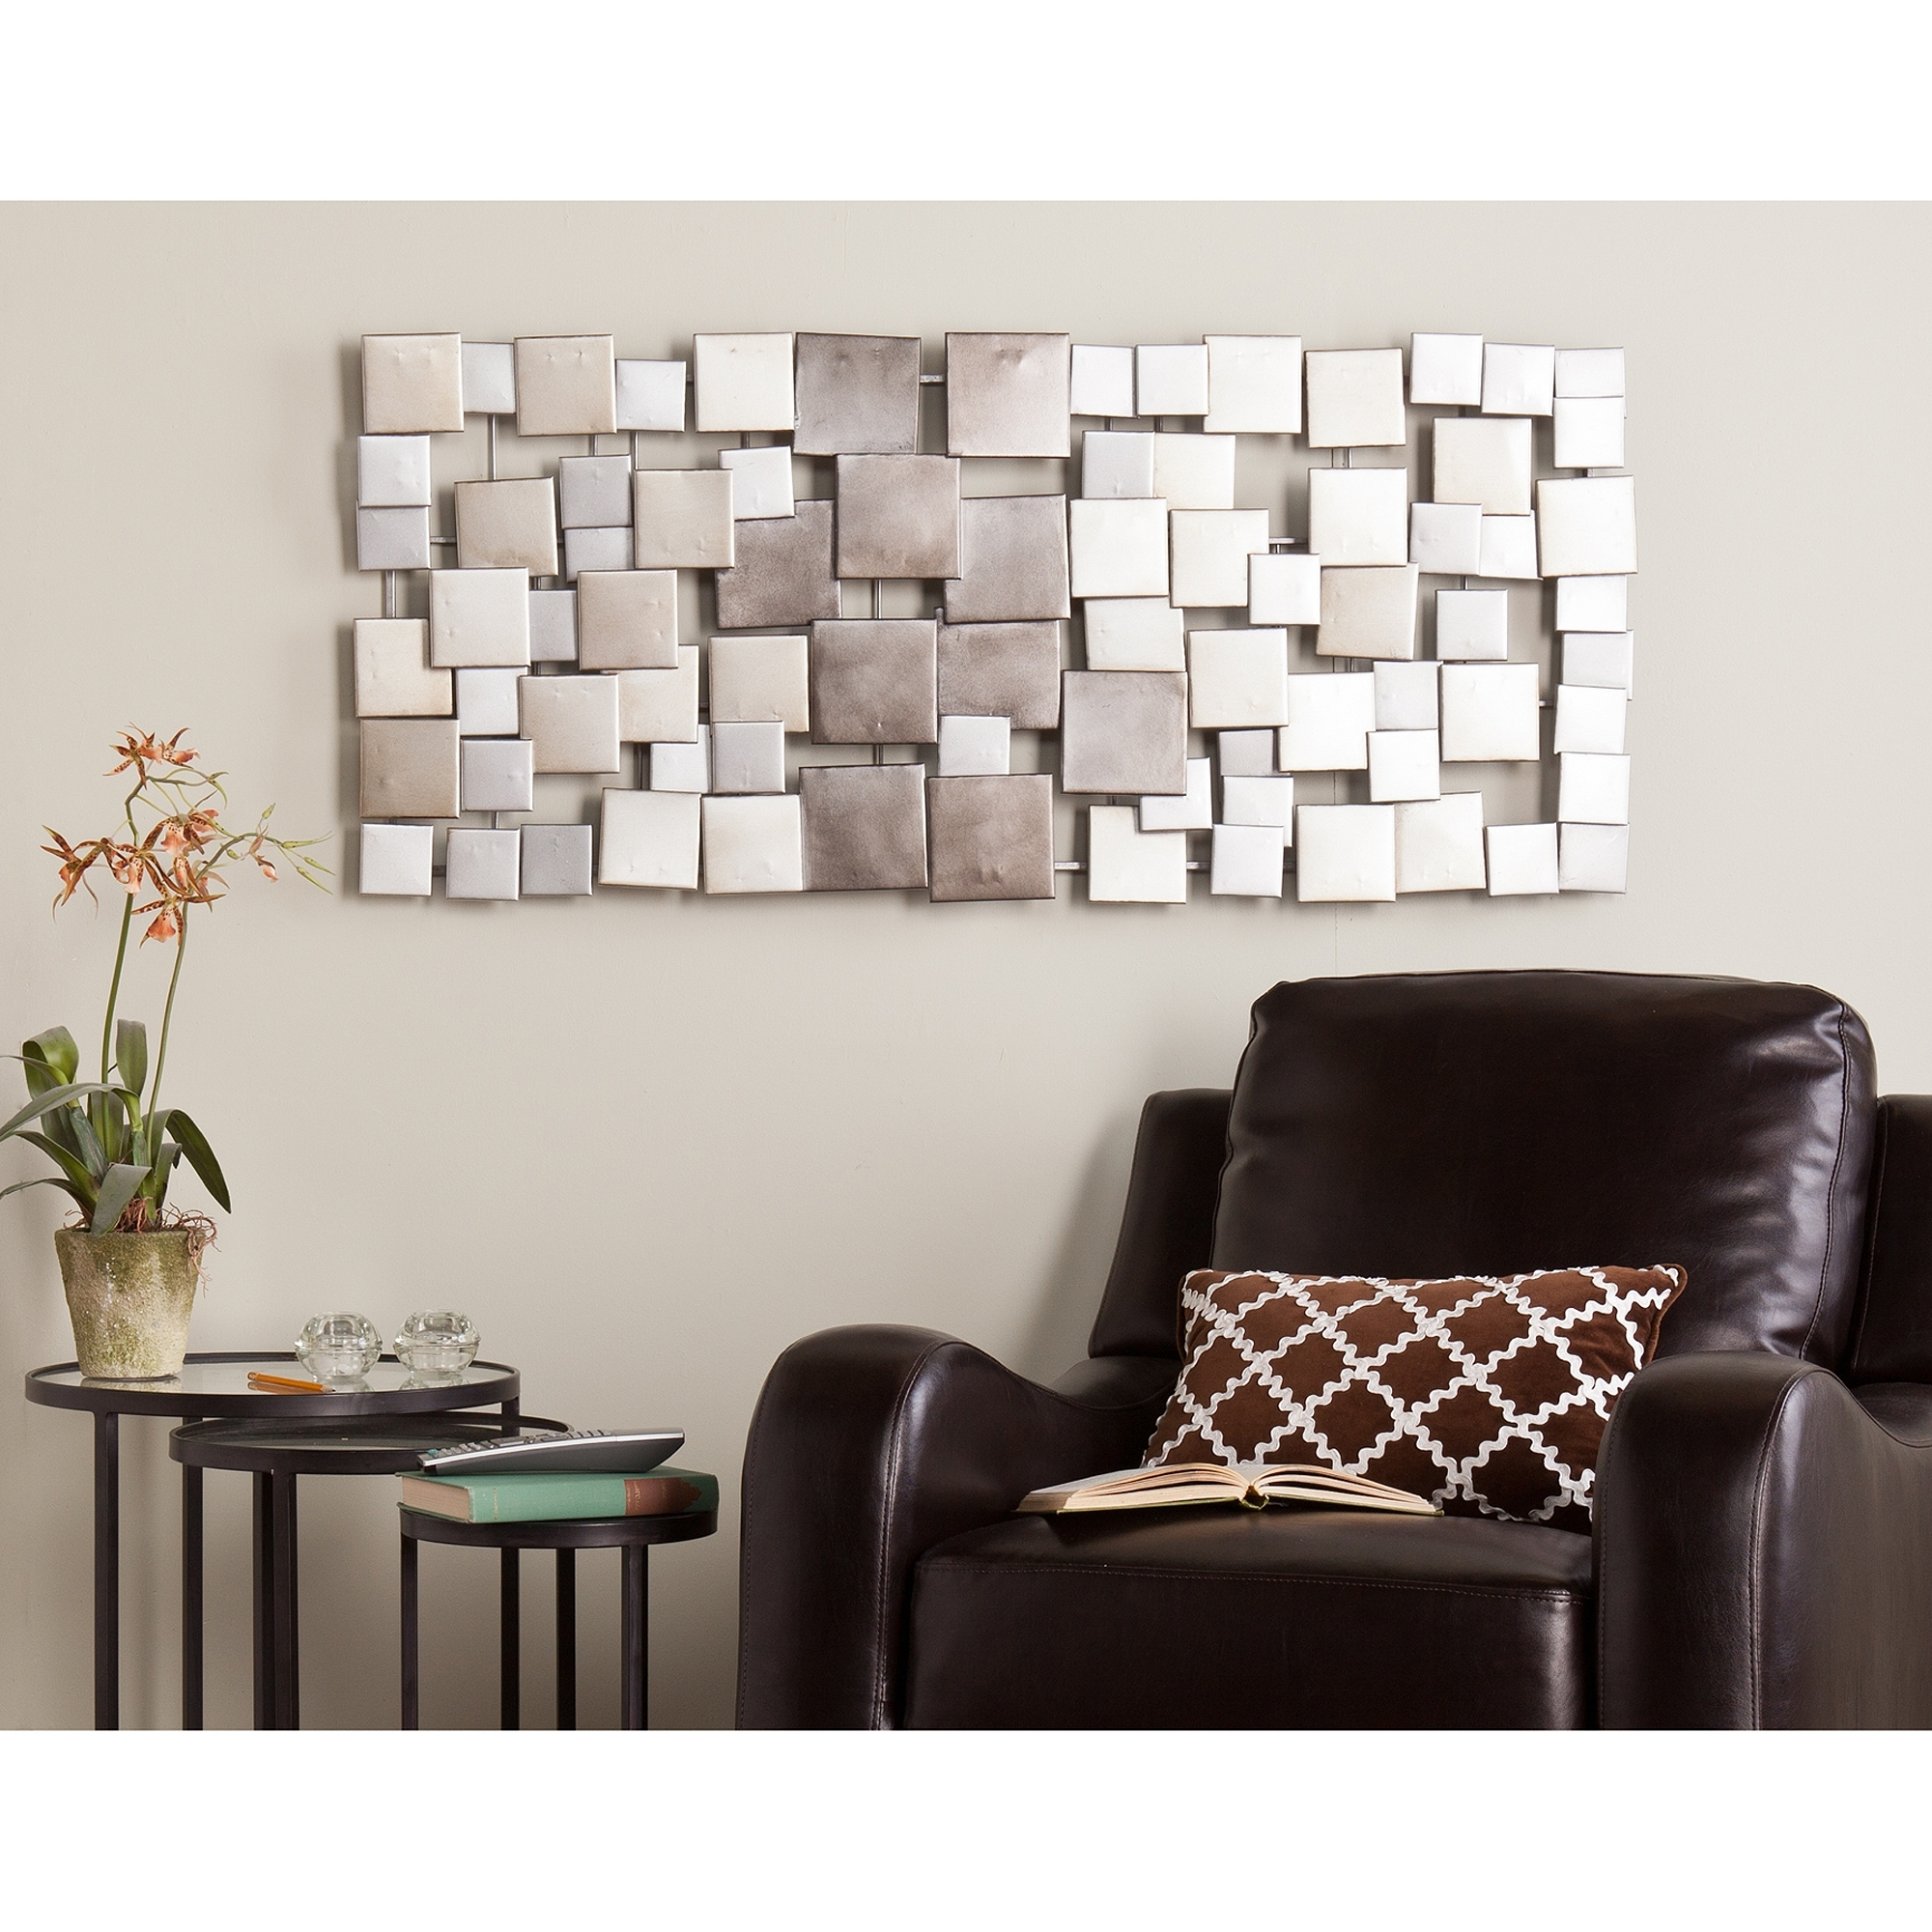 Metal Wall Art – Walmart Inside Favorite Horizontal Metal Wall Art (View 6 of 15)